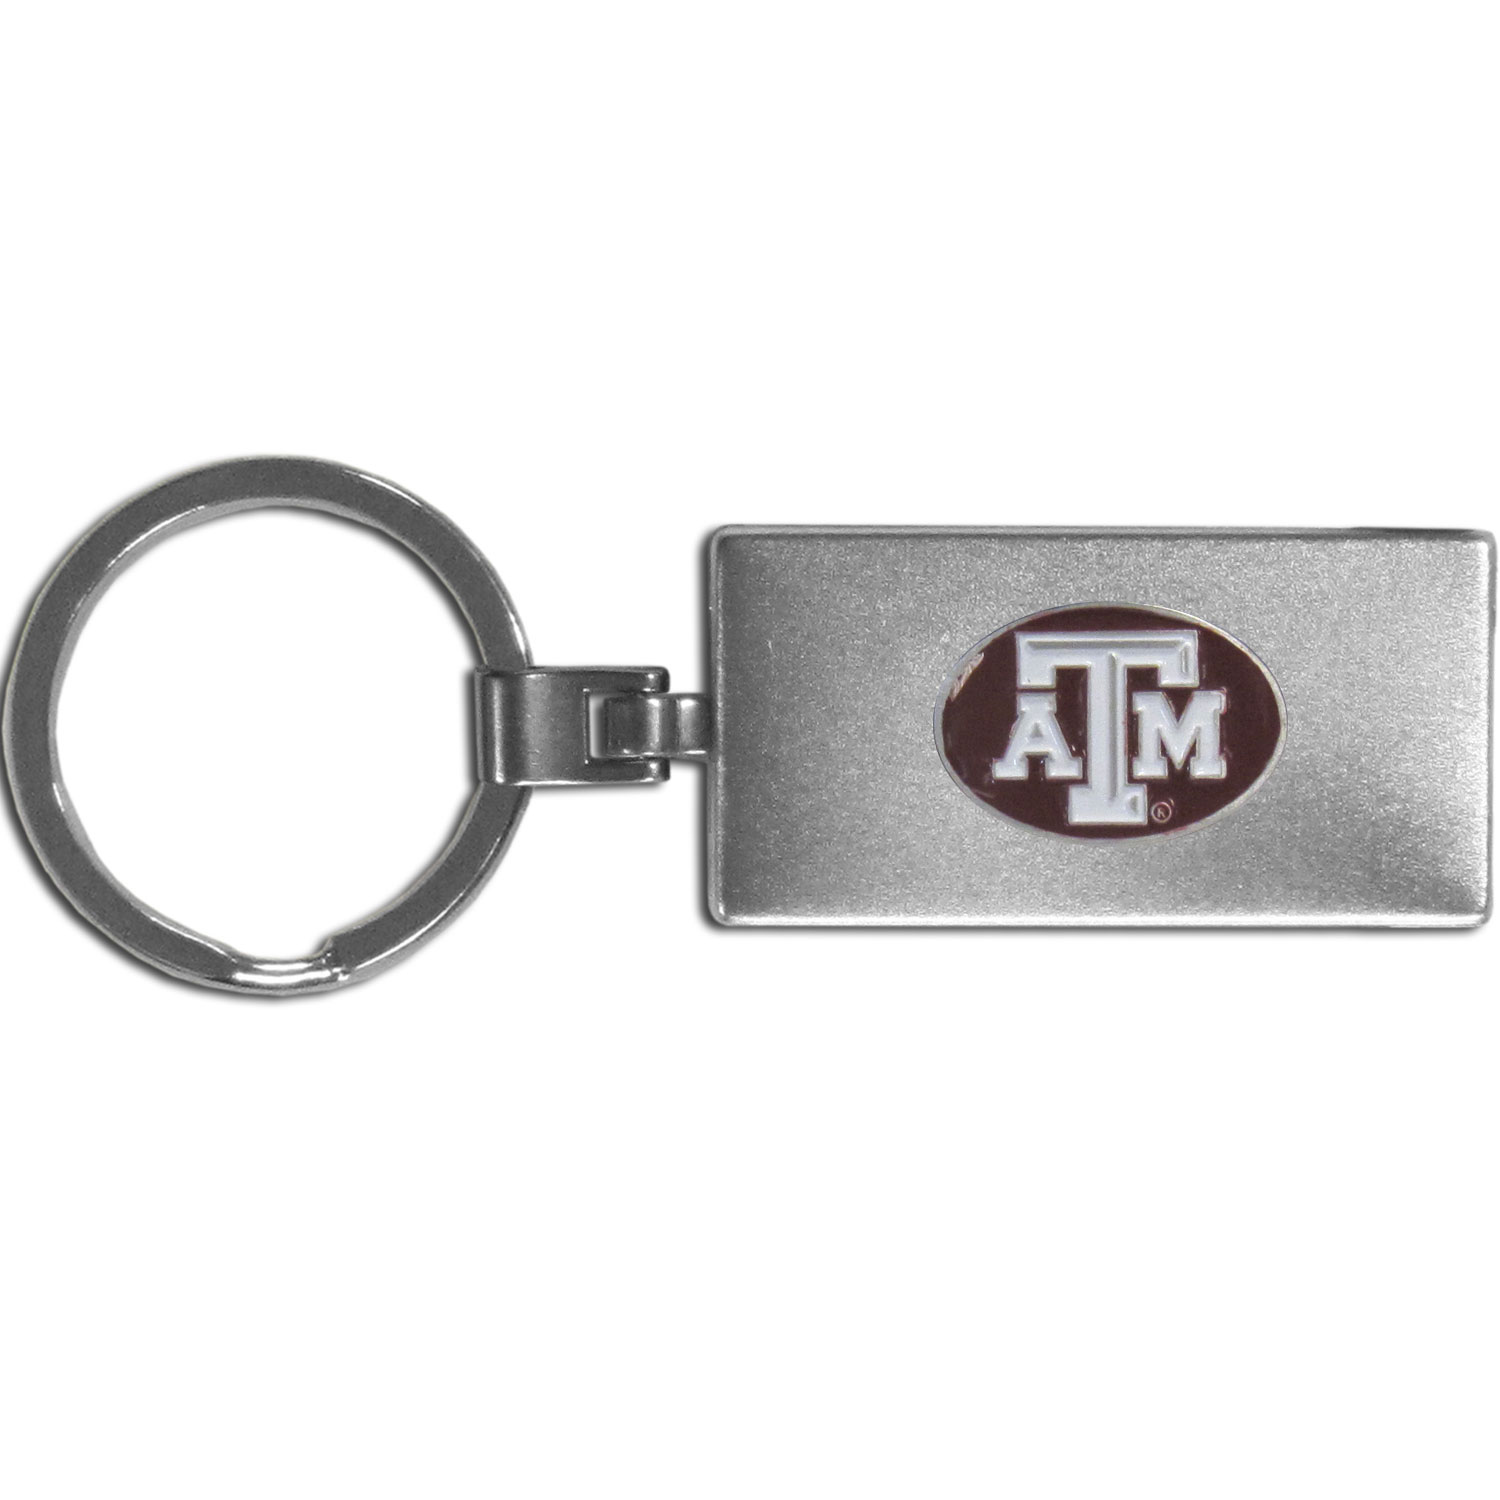 Texas A and M Aggies Multi-tool Key Chain - Be the hero at the tailgate, camping, or on a Friday night with your Texas A & M Aggies Multi-Tool Keychain which comes complete with bottle opener, scissors, knife, nail file and screw driver. Be it opening a package or a beverage Siskiyou's Multi-Tool Keychain goes wherever your keys do. The keychain hangs at 4 inches long when closed.